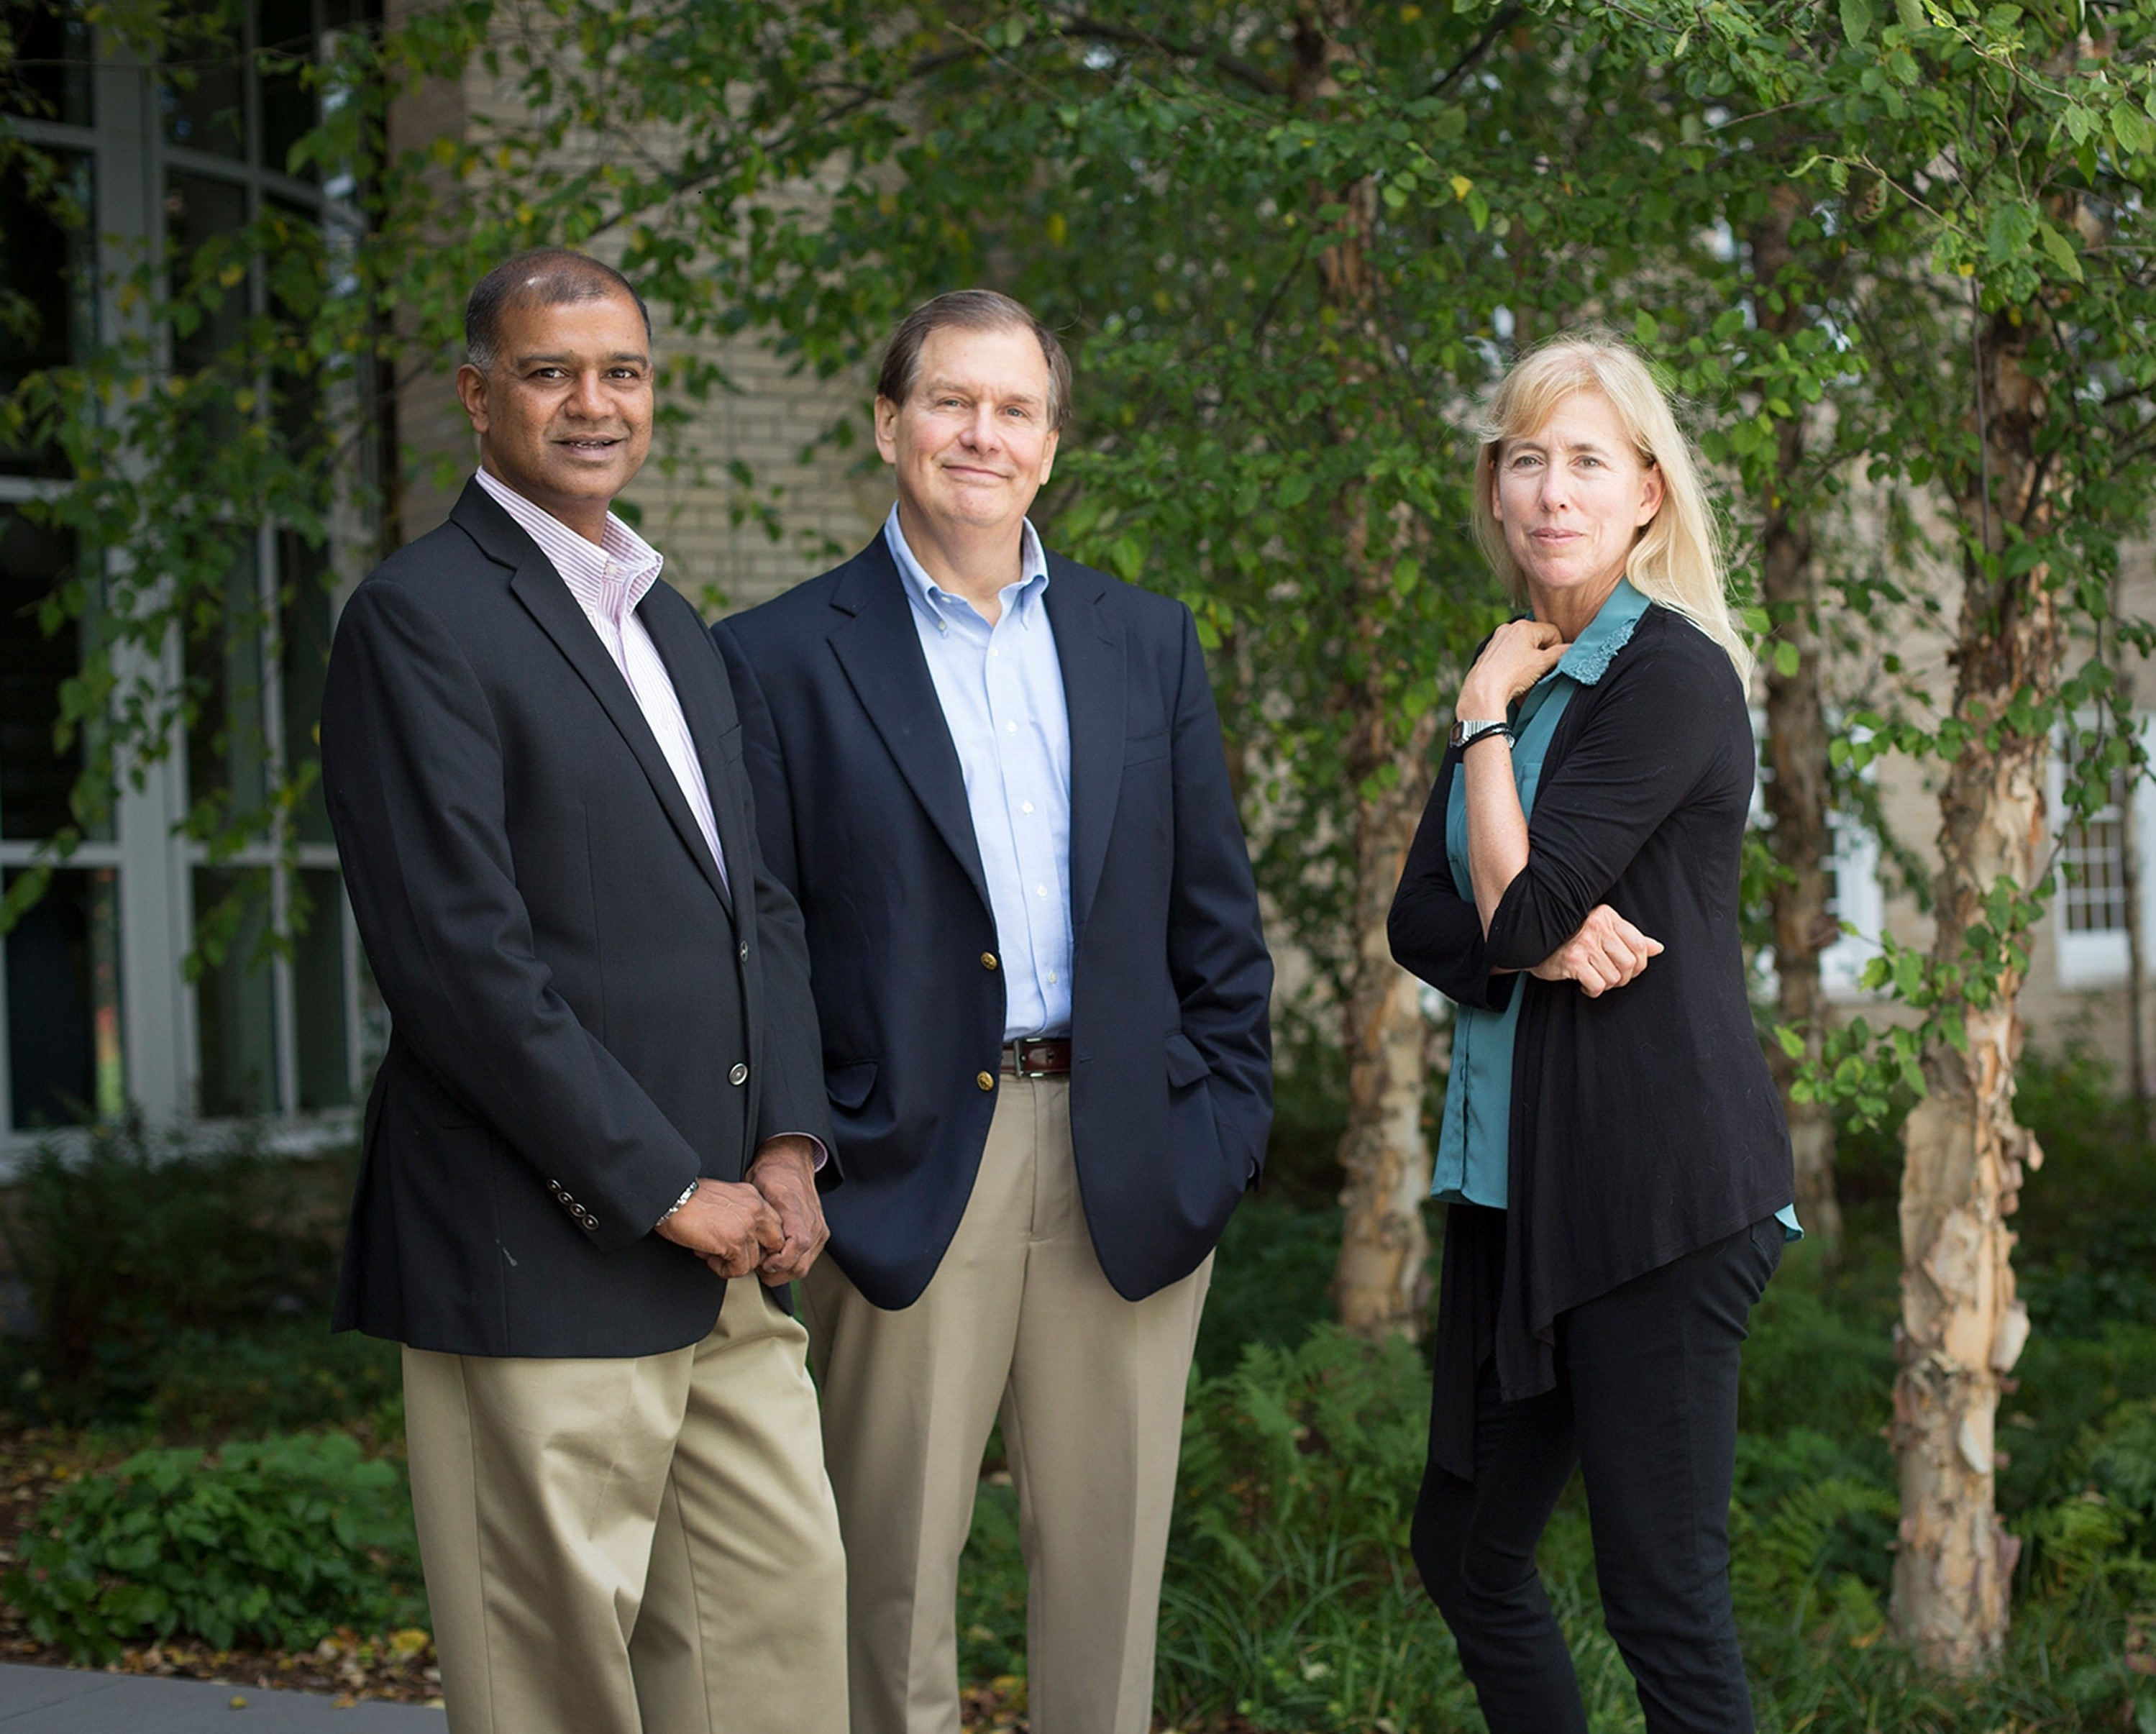 Photo of Rohit Verma, Brooke Hollis, and Mardelle Shepley standing outside in an area with trees and grass